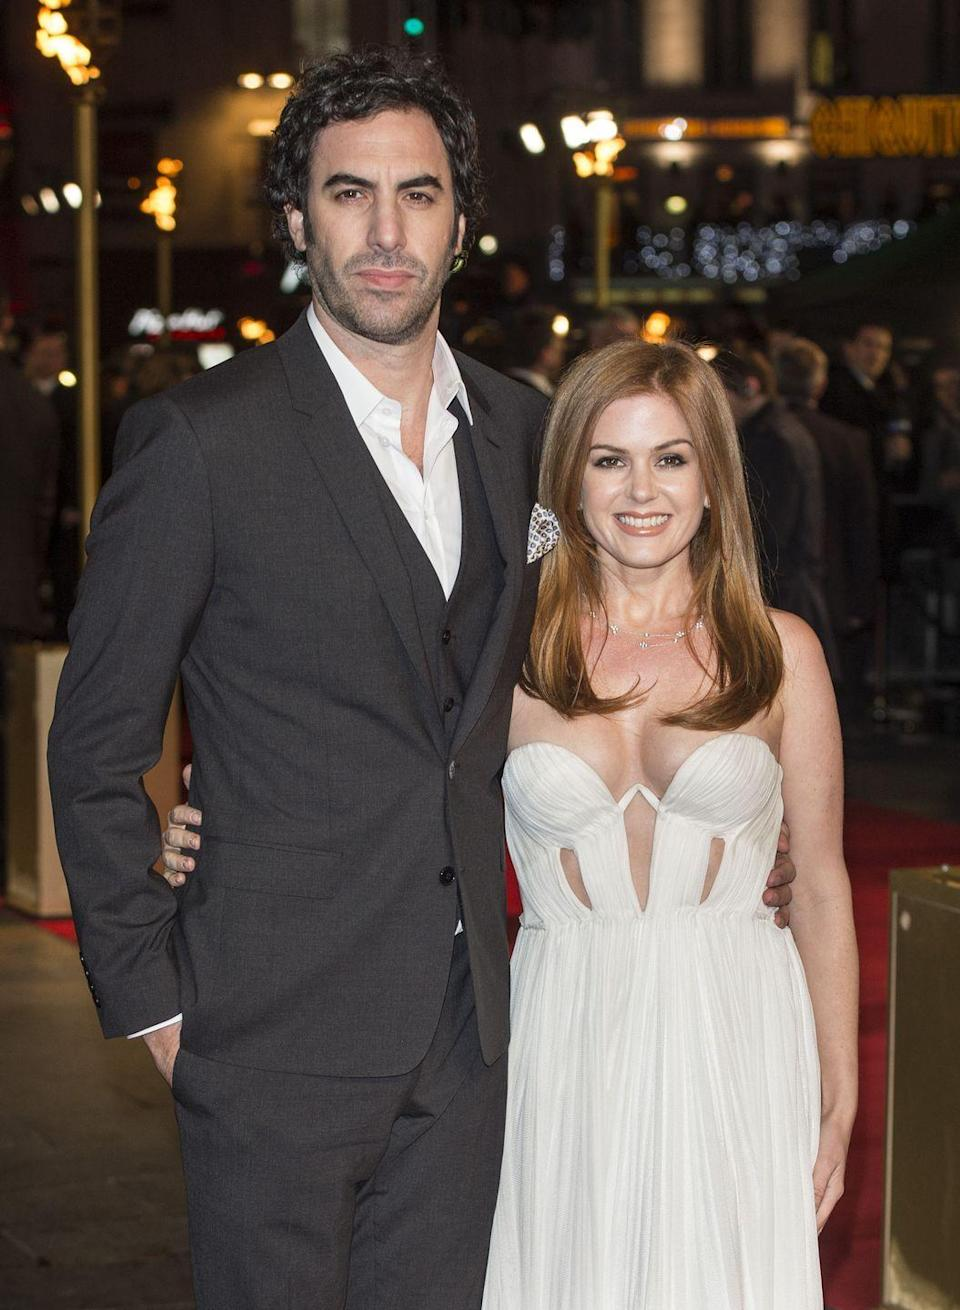 """<p>After meeting in 2002, Isla Fisher and Sacha Baron Cohen got engaged and Isla converted to Judaism for her partner. In 2010, they <a href=""""https://people.com/celebrity/isla-fisher-and-sacha-baron-cohens-secret-six-guest-wedding/"""" rel=""""nofollow noopener"""" target=""""_blank"""" data-ylk=""""slk:informed six guests"""" class=""""link rapid-noclick-resp"""">informed six guests</a> of their elopement plans at the last minute and said """"I do"""" in a small ceremony in Paris. """"It's very important to me to have a beautiful ritual celebrated with my family and friends,"""" Isla told <em><a href=""""https://people.com/celebrity/isla-fisher-and-sacha-baron-cohens-secret-six-guest-wedding/"""" rel=""""nofollow noopener"""" target=""""_blank"""" data-ylk=""""slk:PEOPLE"""" class=""""link rapid-noclick-resp"""">PEOPLE</a></em>. """"And when you are in the public eye, to keep that private and to make it happen without it being really visible is really difficult.""""</p>"""